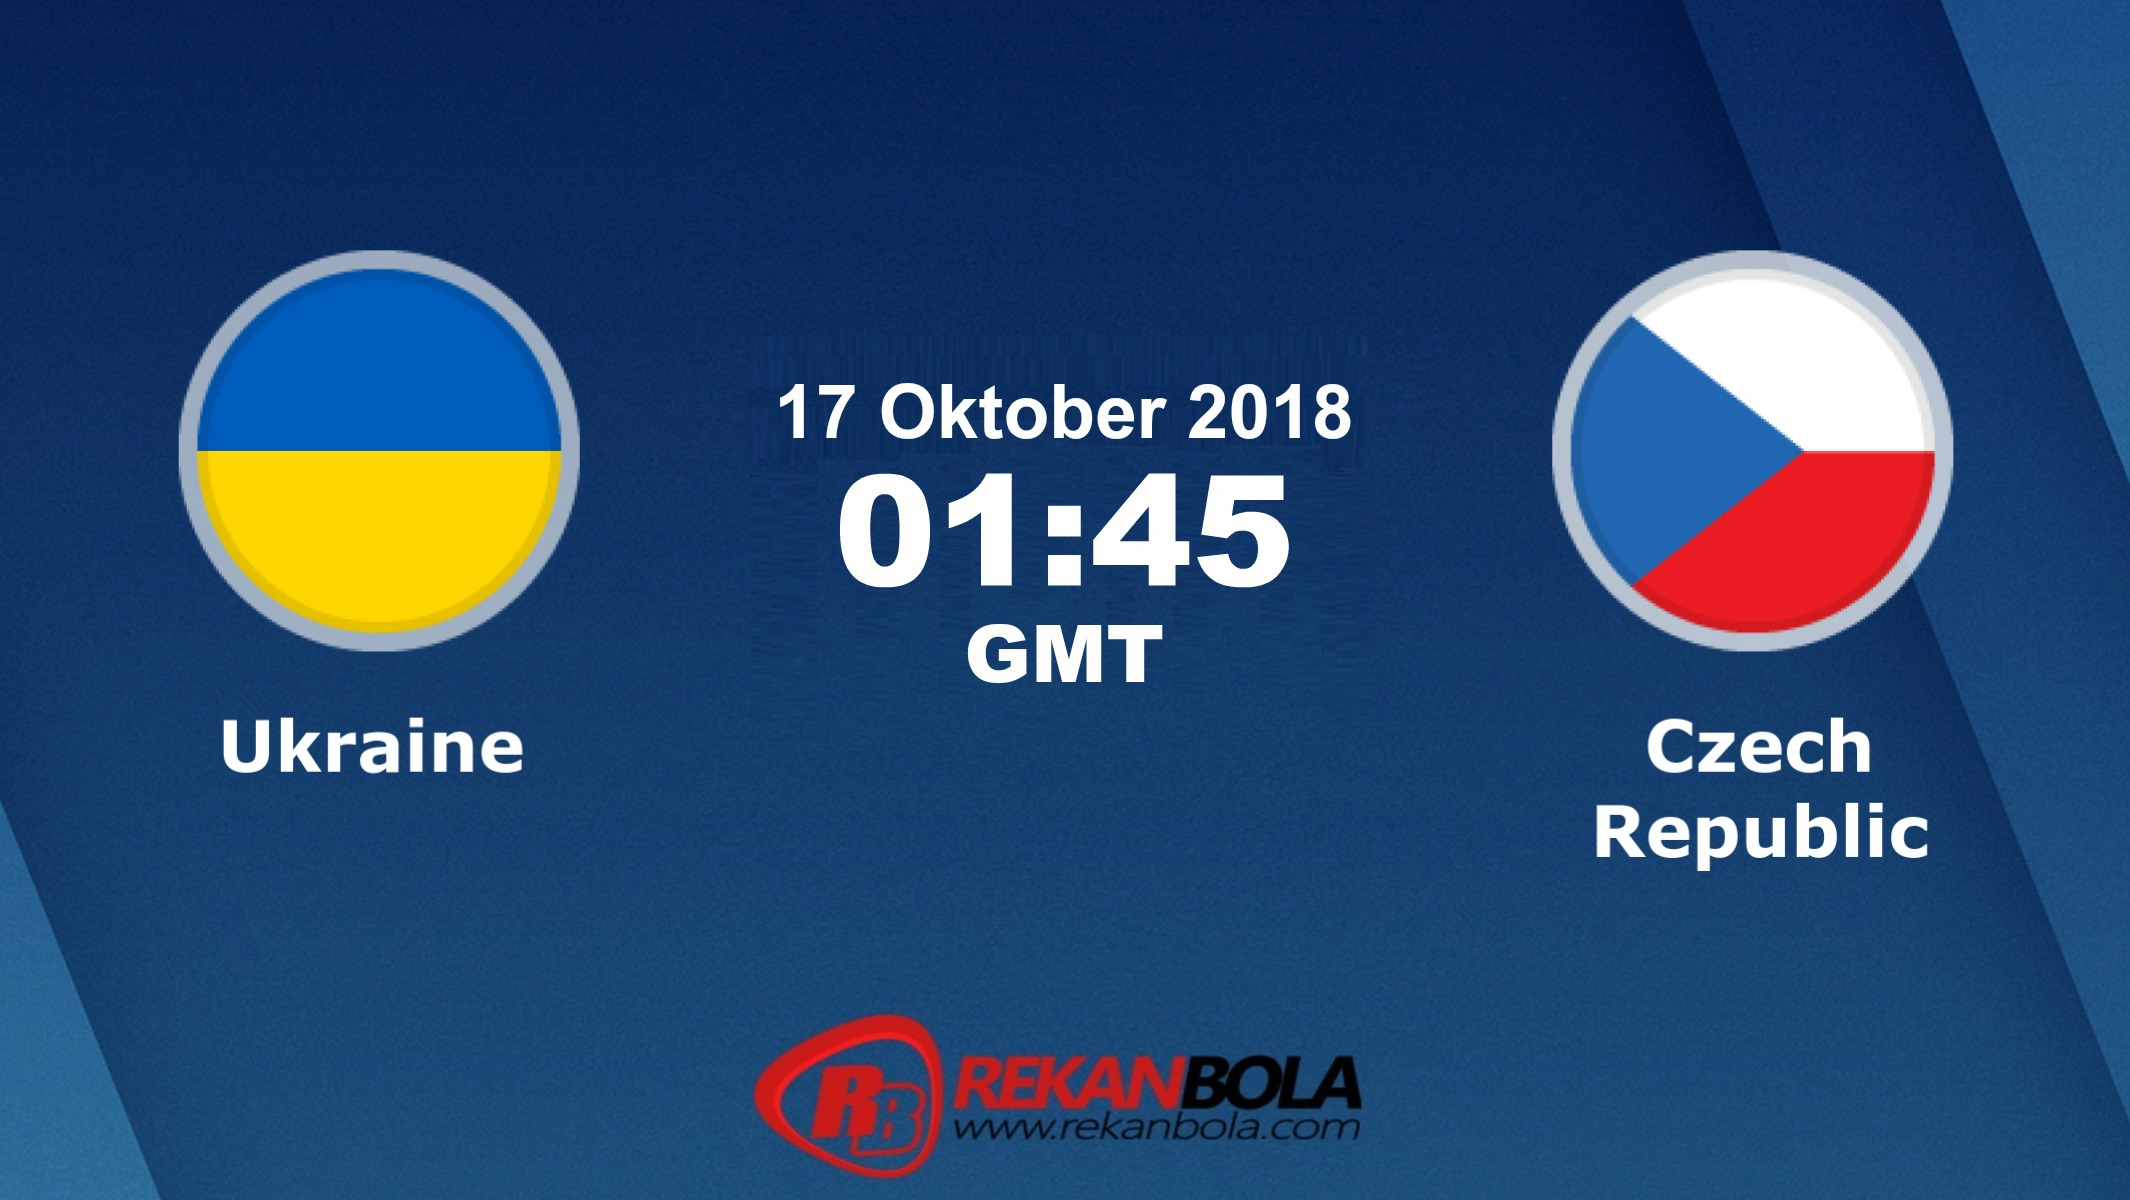 Nonton Siaran Live Streaming Ukraina Vs Czech 17 Oktober 2018